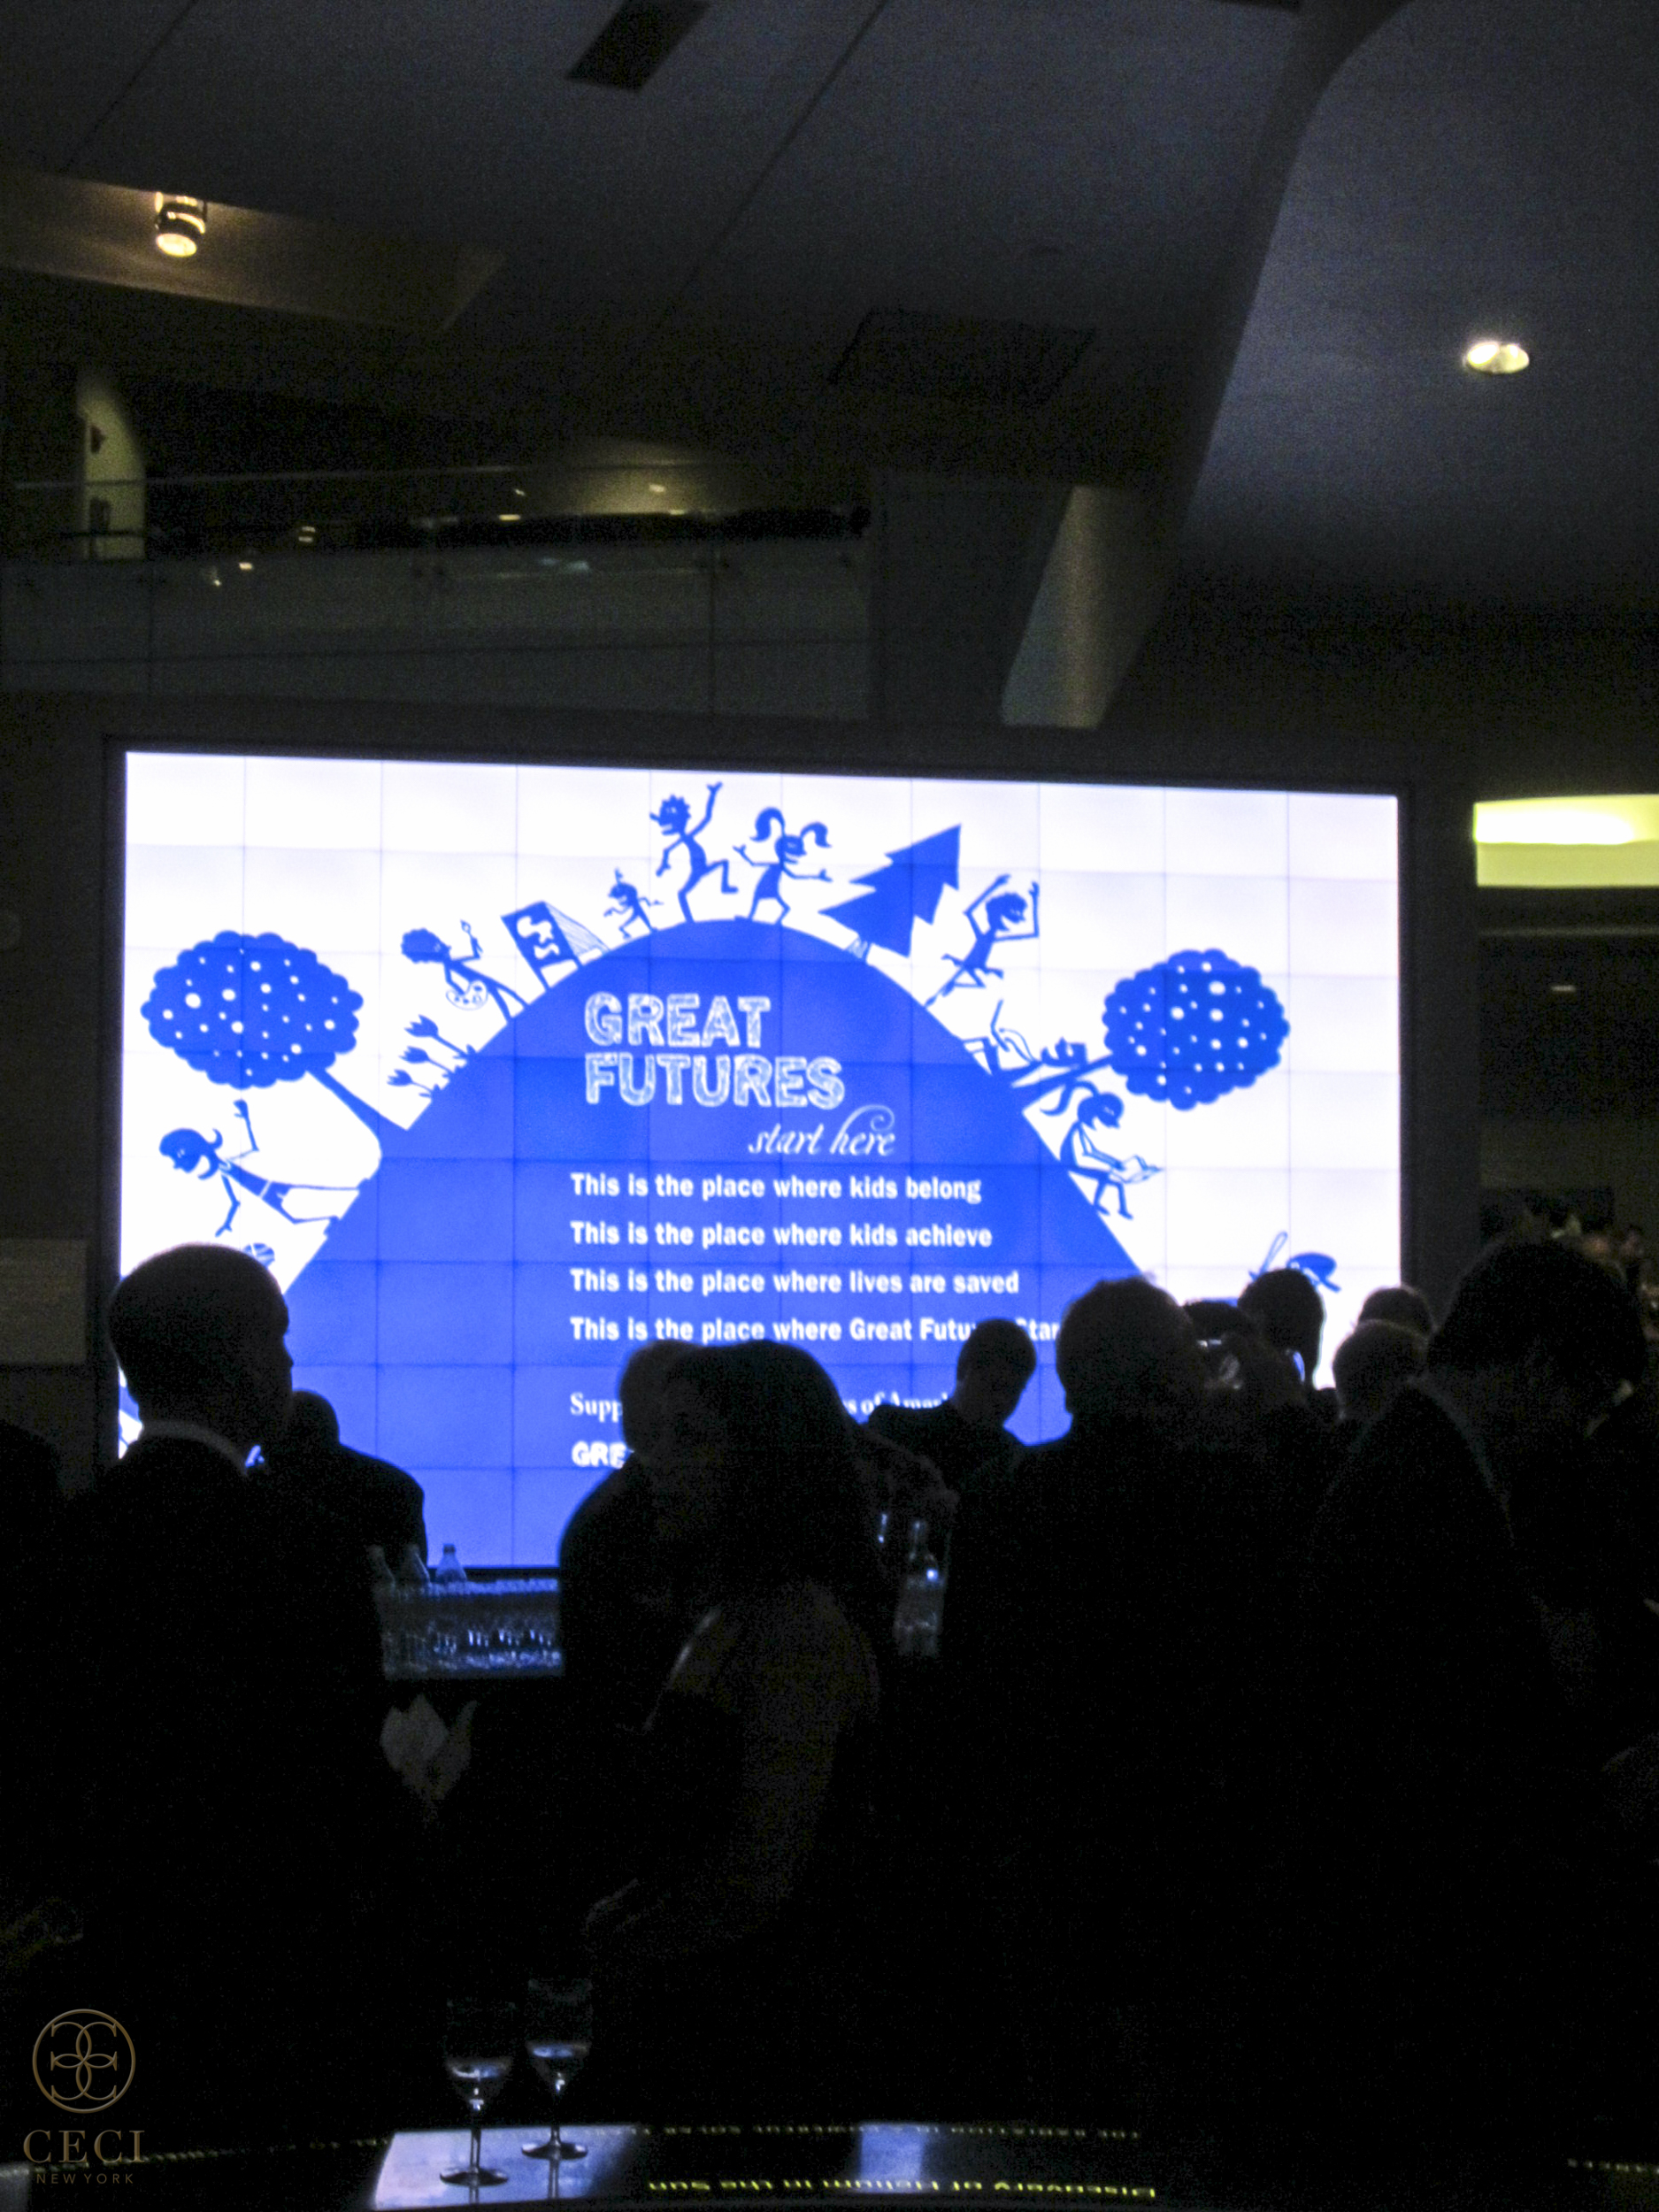 ceci-new-york-gives-back-boys-and-girls-club-of-america-great-futures-gala-2011-invitations-design-paper-accessories-signage-5.jpg